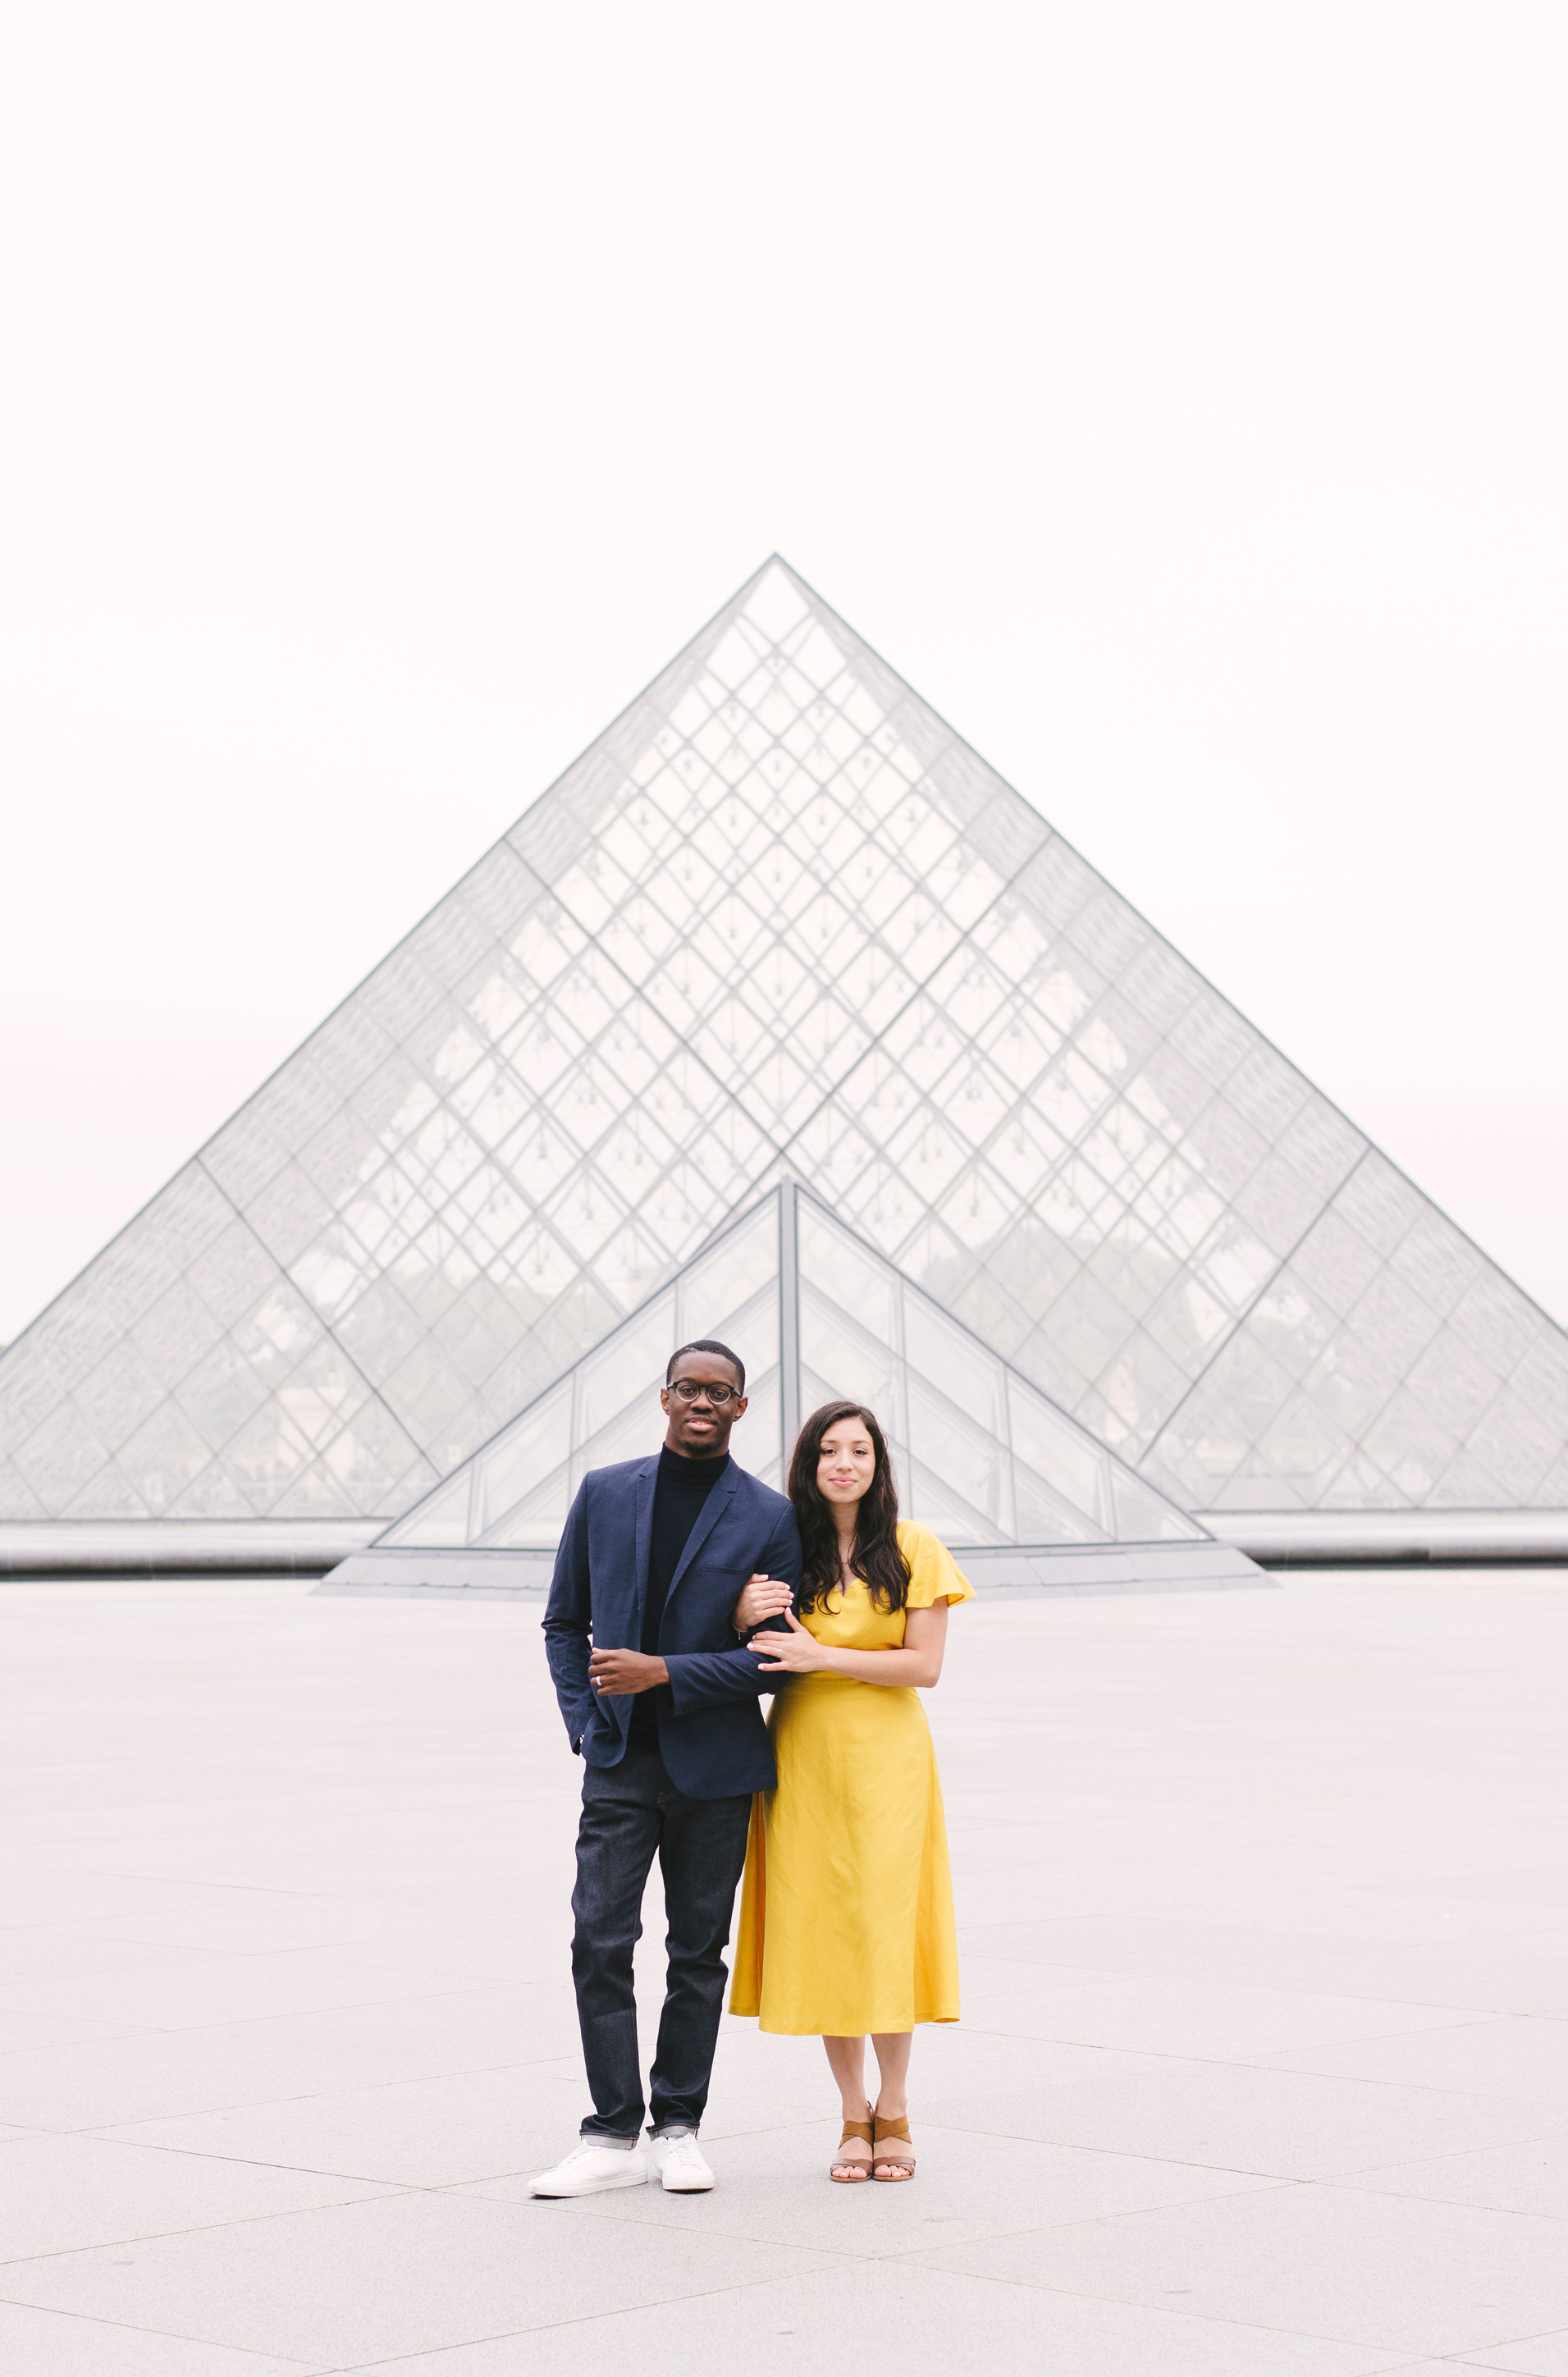 Couple-photoshoot-Paris-Pont-des-arts-Louvre-PalaisRoyale-068.jpg